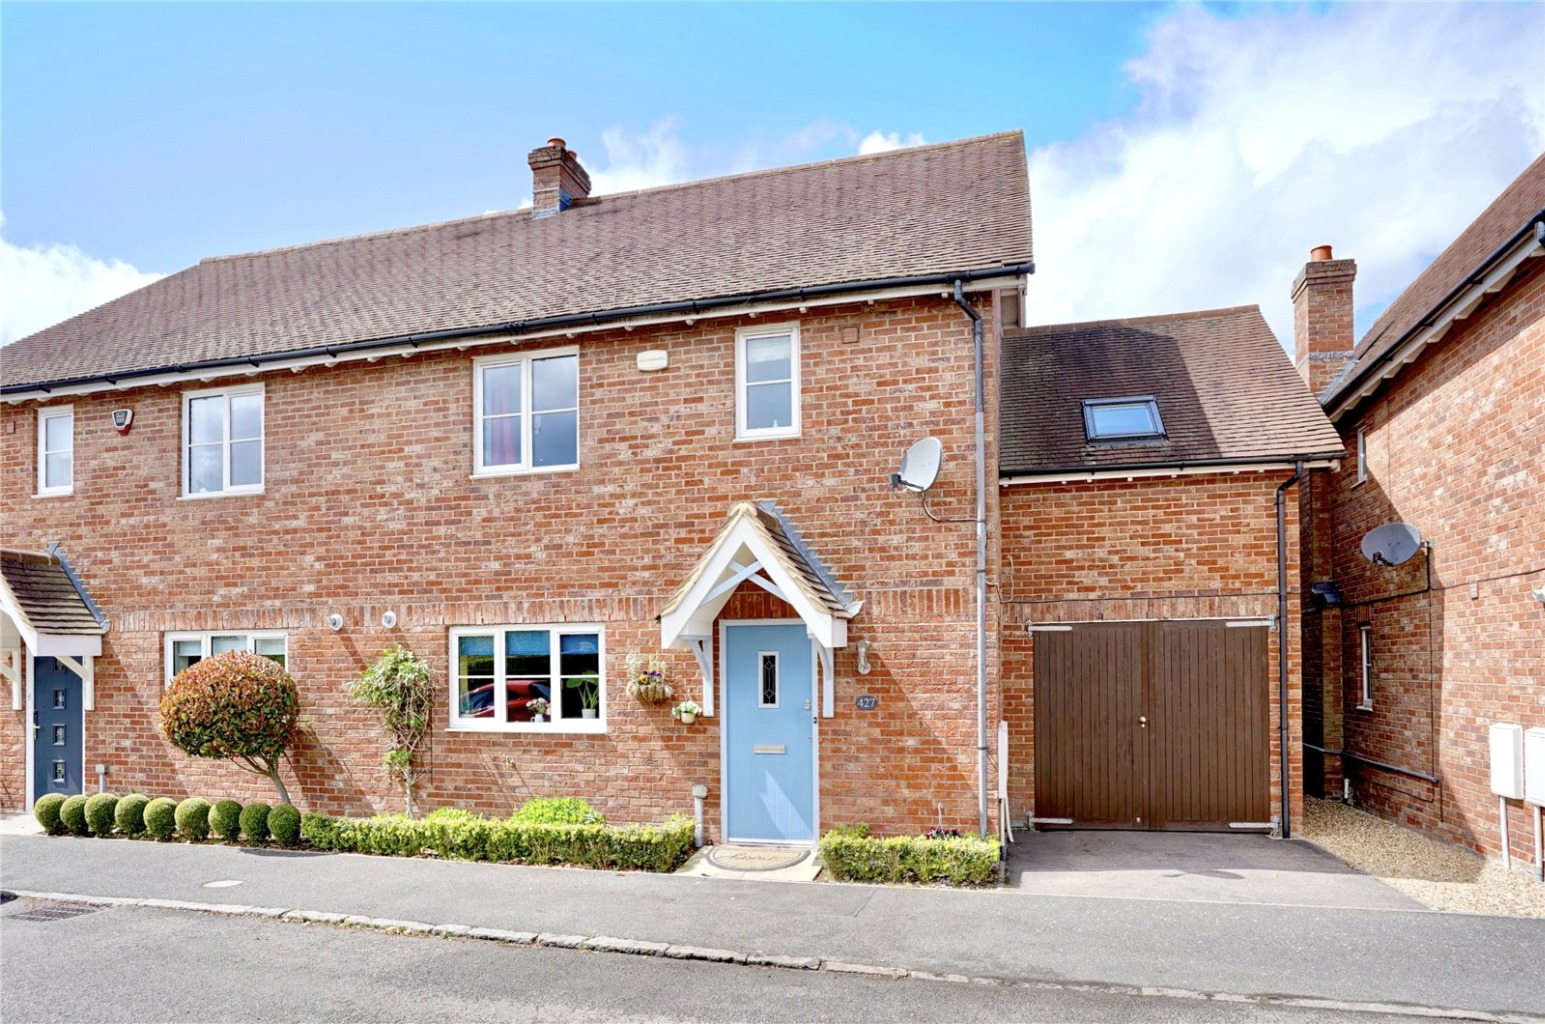 4 bed semi-detached house for sale in Great North Road, St. Neots - Property Image 1